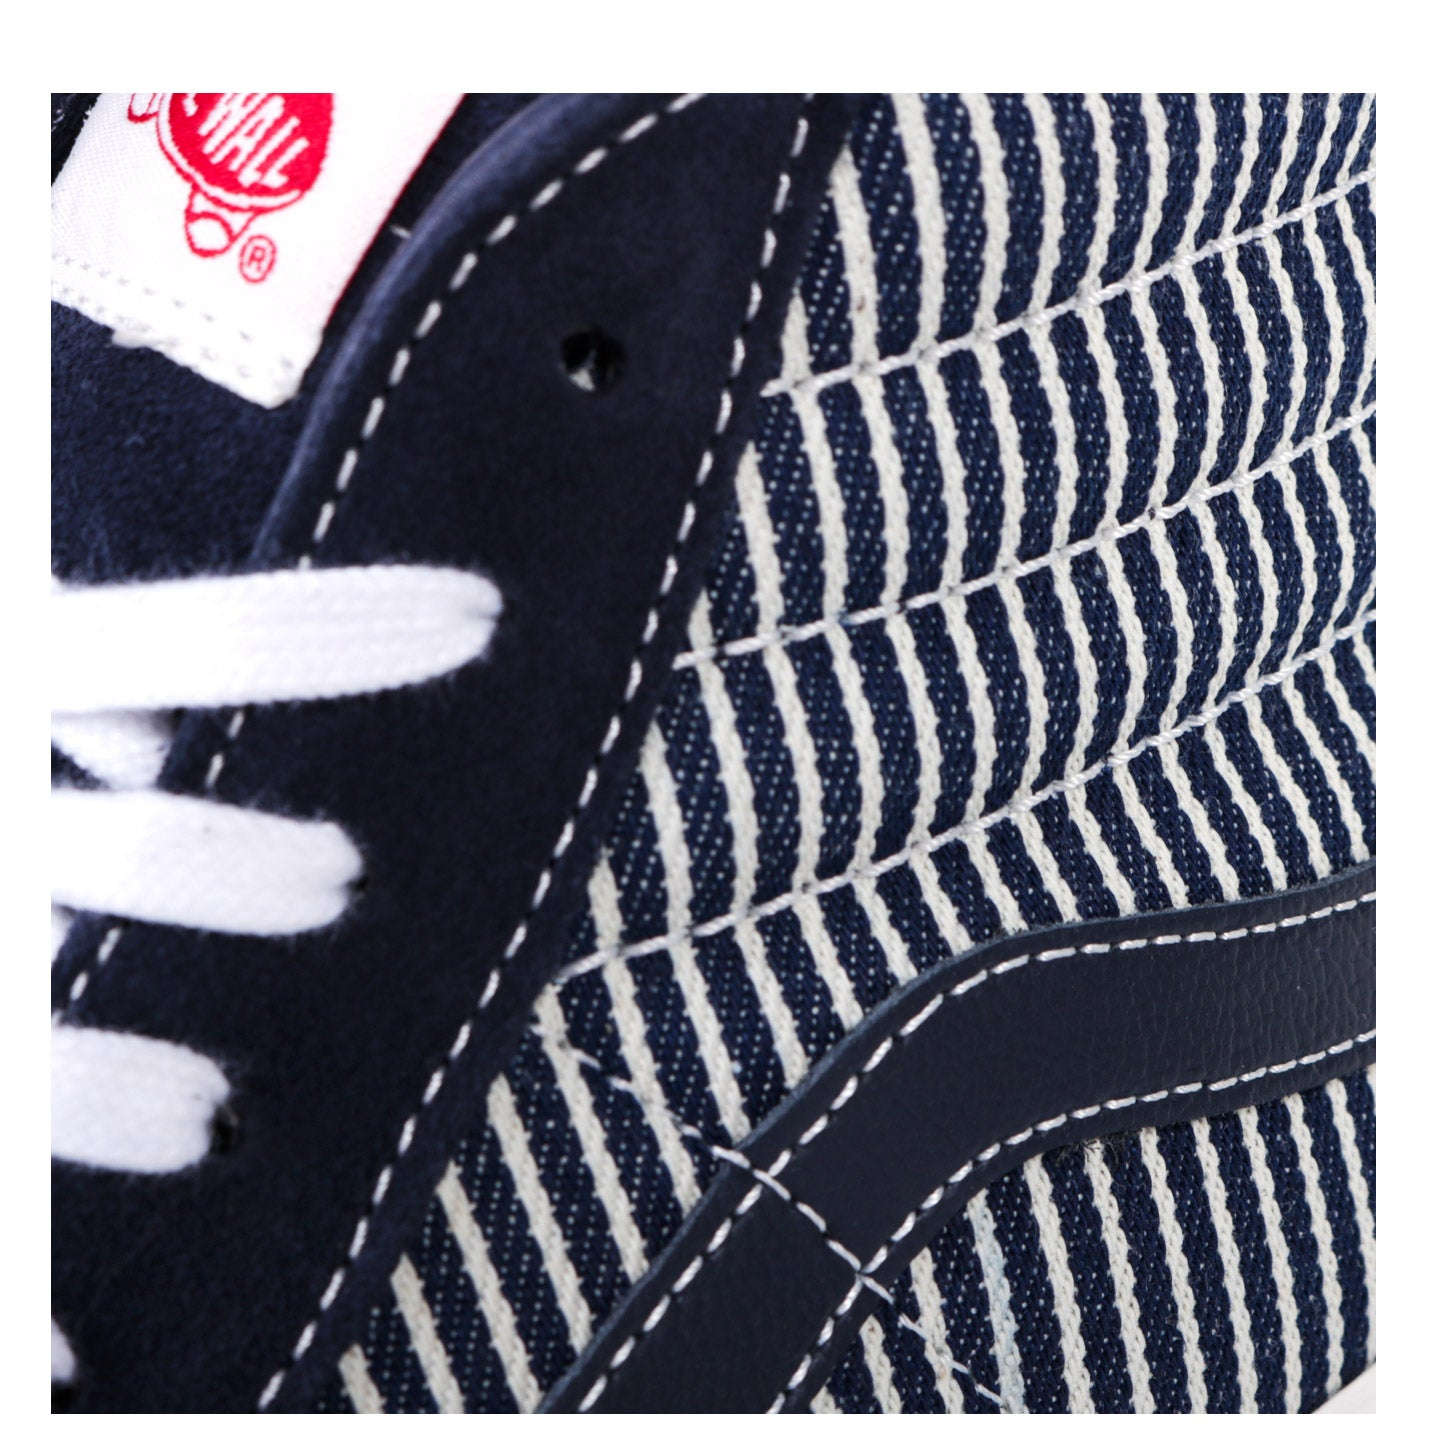 VAULT BY VANS SK8-HI REISSUE VLT LX MT. VERNON PARISIAN NIGHT / MARSHMALLOW